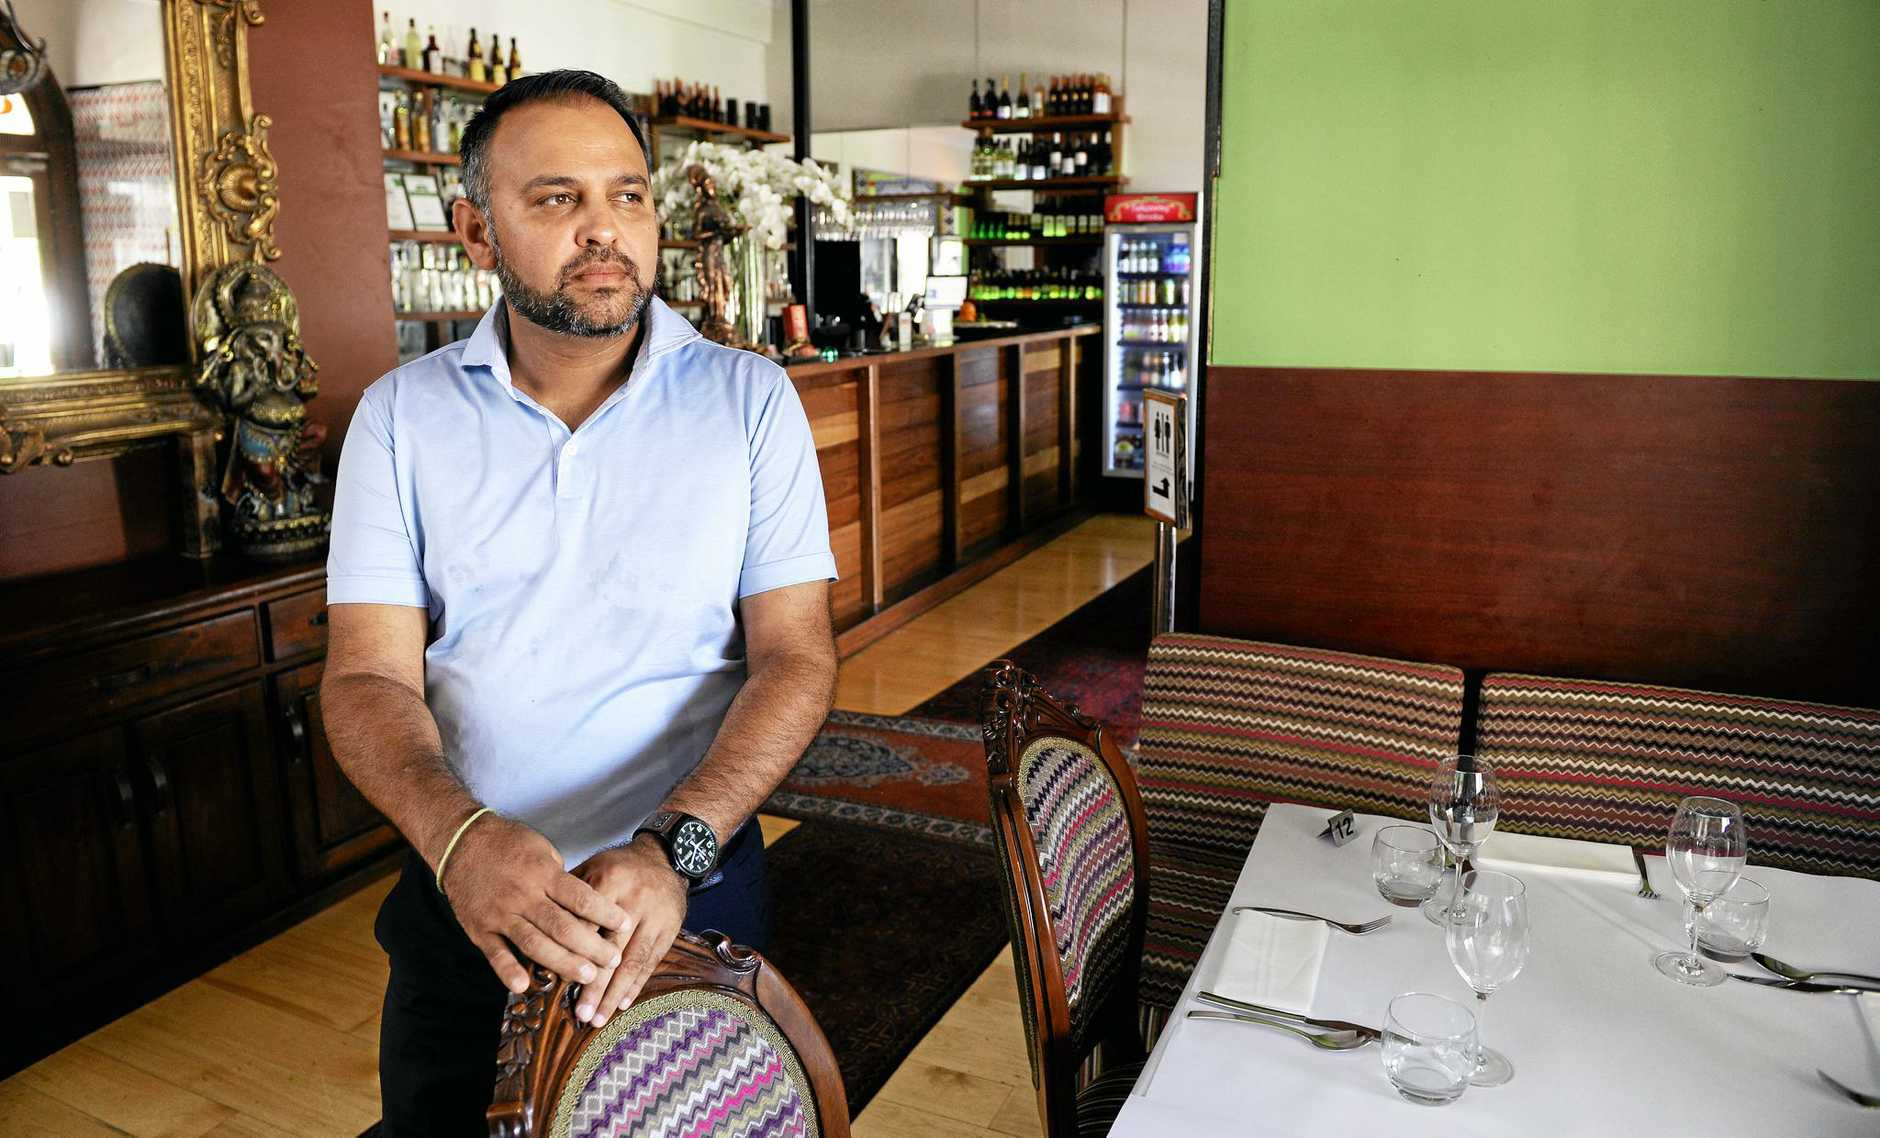 FED UP: Indian Mehfil owner Raj Sharma is at at his lowest ebb after a thief stole $24,000.